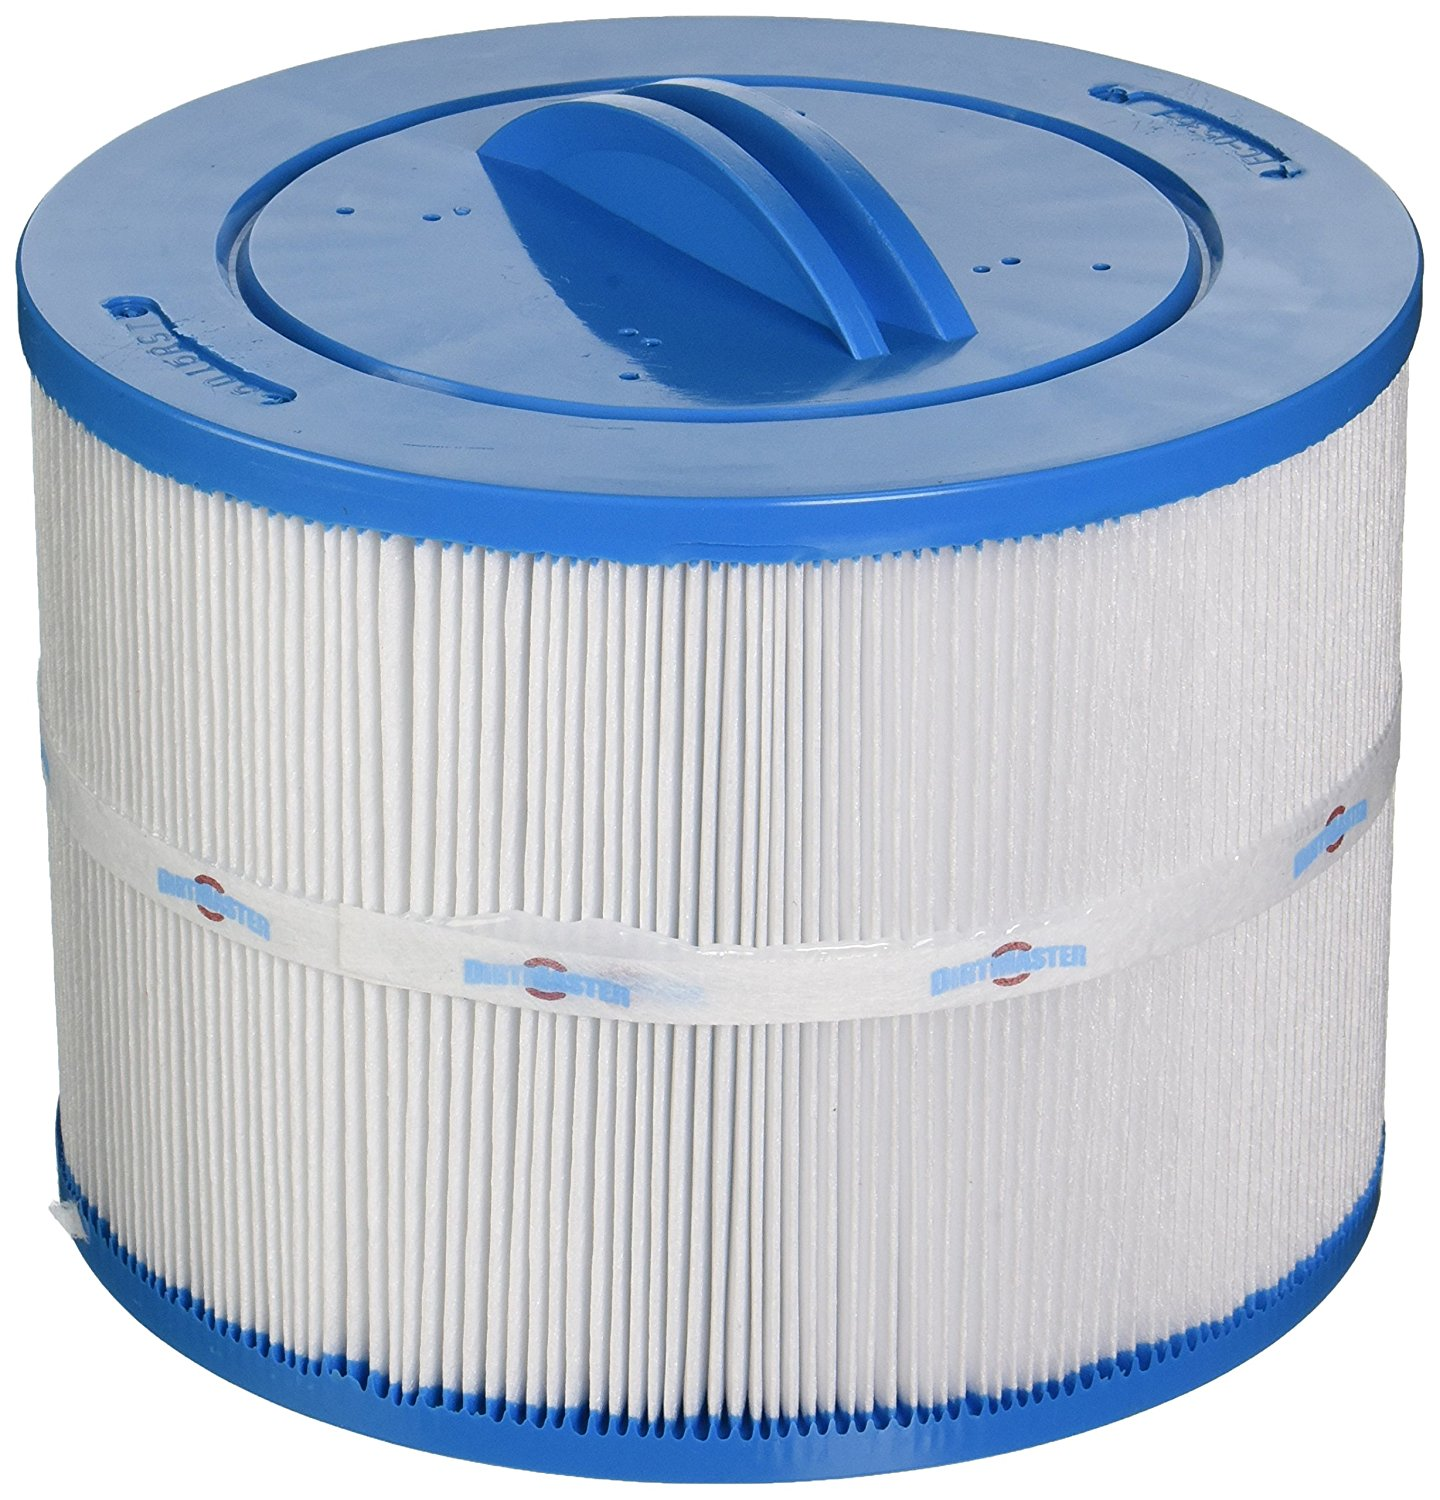 Jacuzzi Replacement Pool Filter Cartridge Spa Filter Filbur Fc0536 Spa 911 Hot Tub Parts Canada